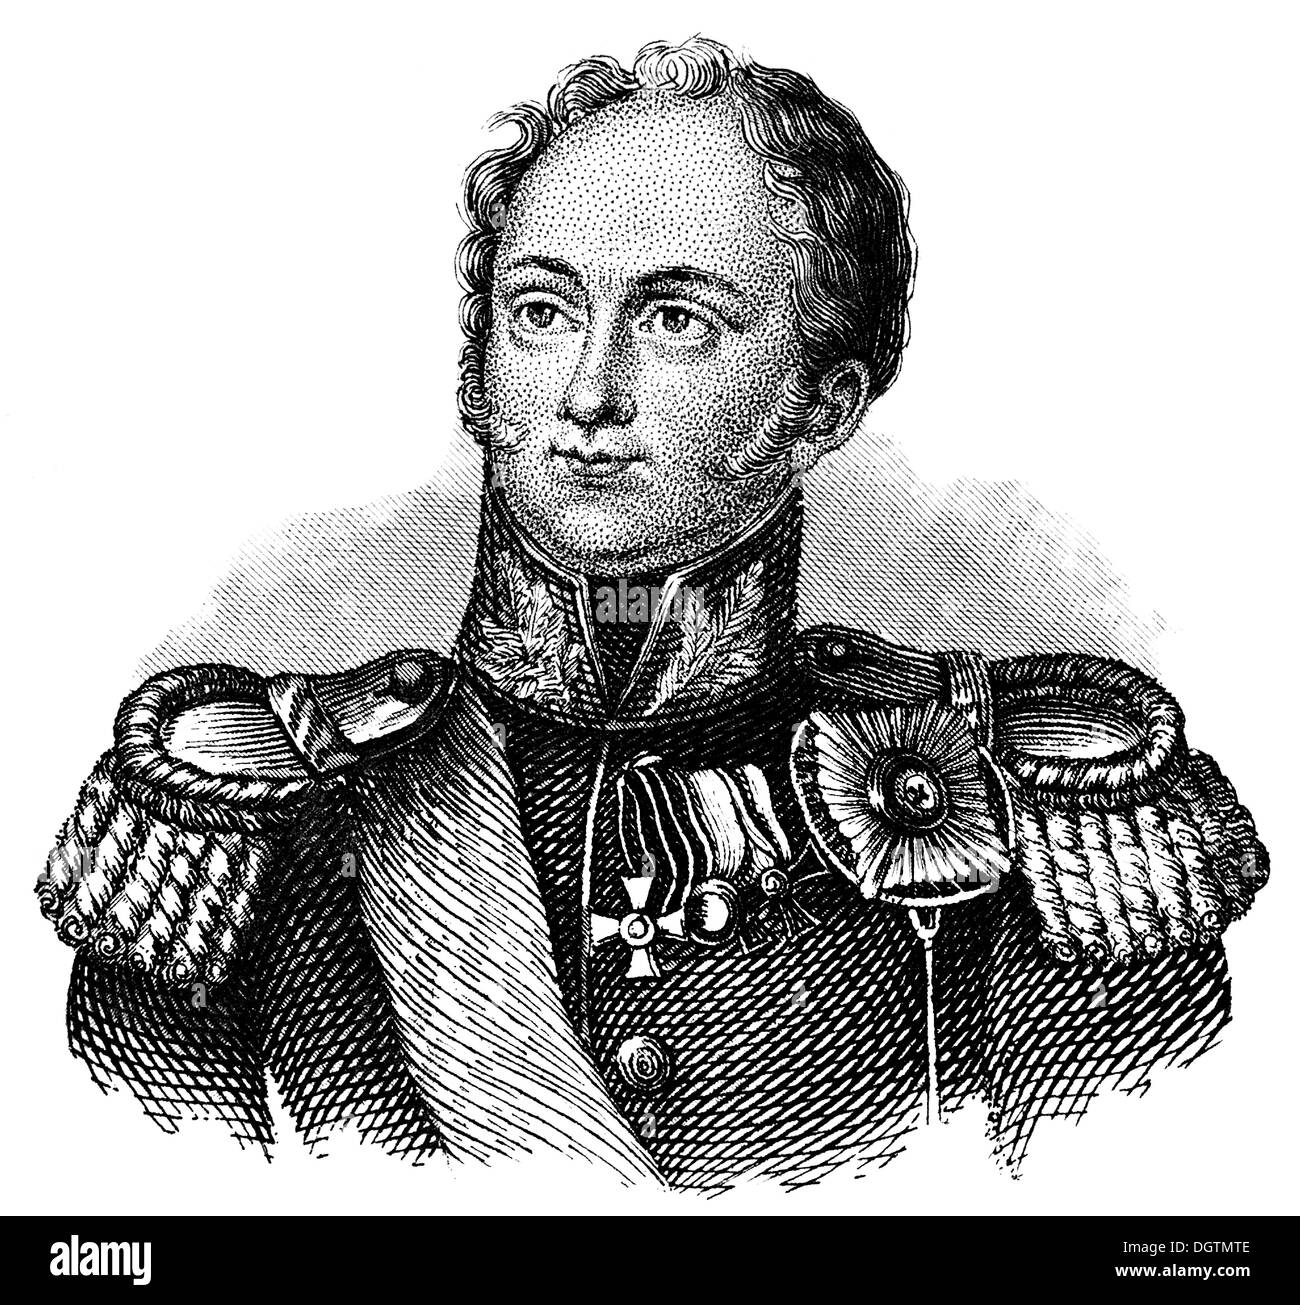 Alexander I of Russia, Alexander the Blessed 1777 - 1825, Emperor of Russia, - Stock Image